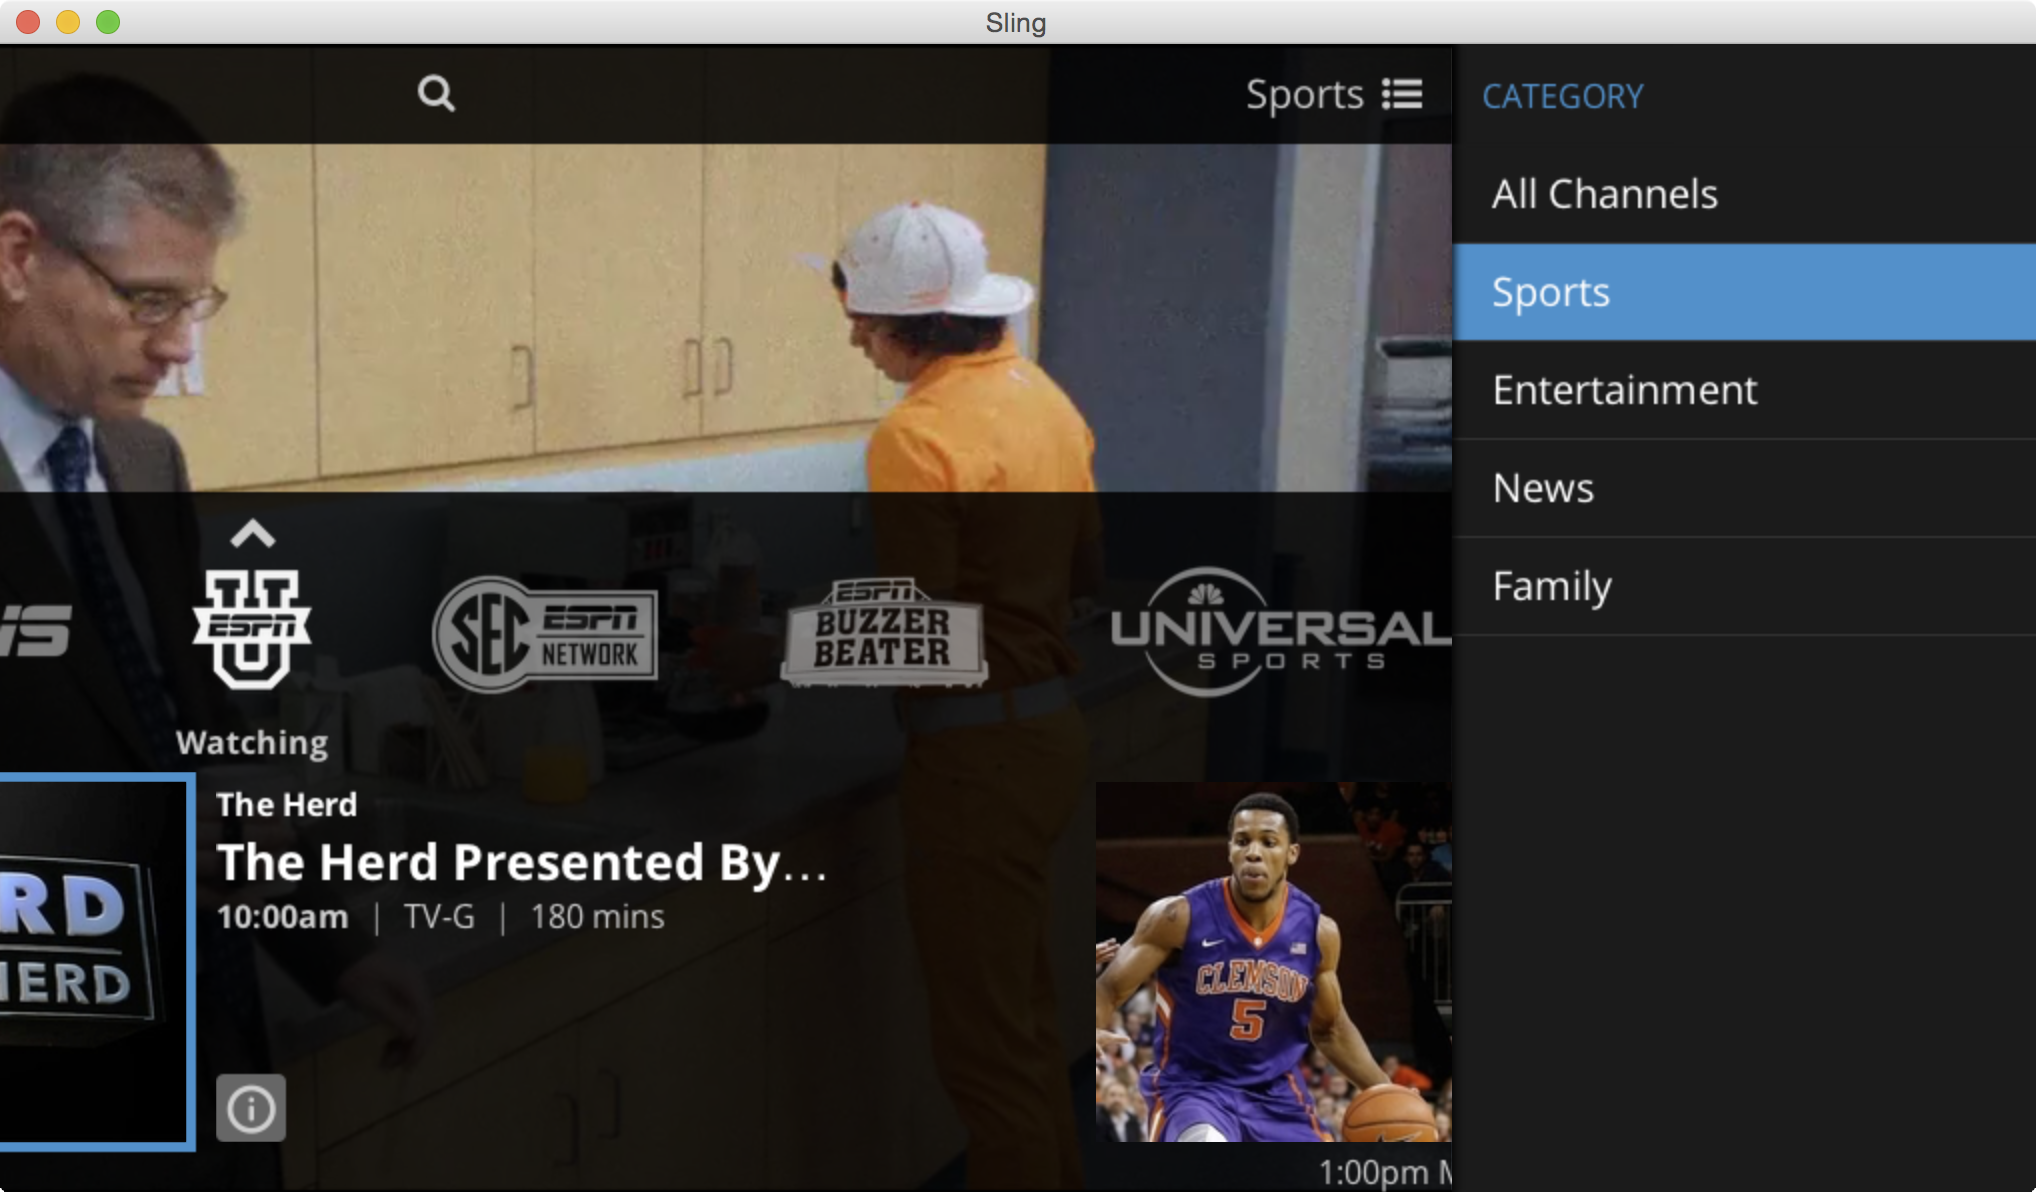 Review: Sling TV for Mac and iOS